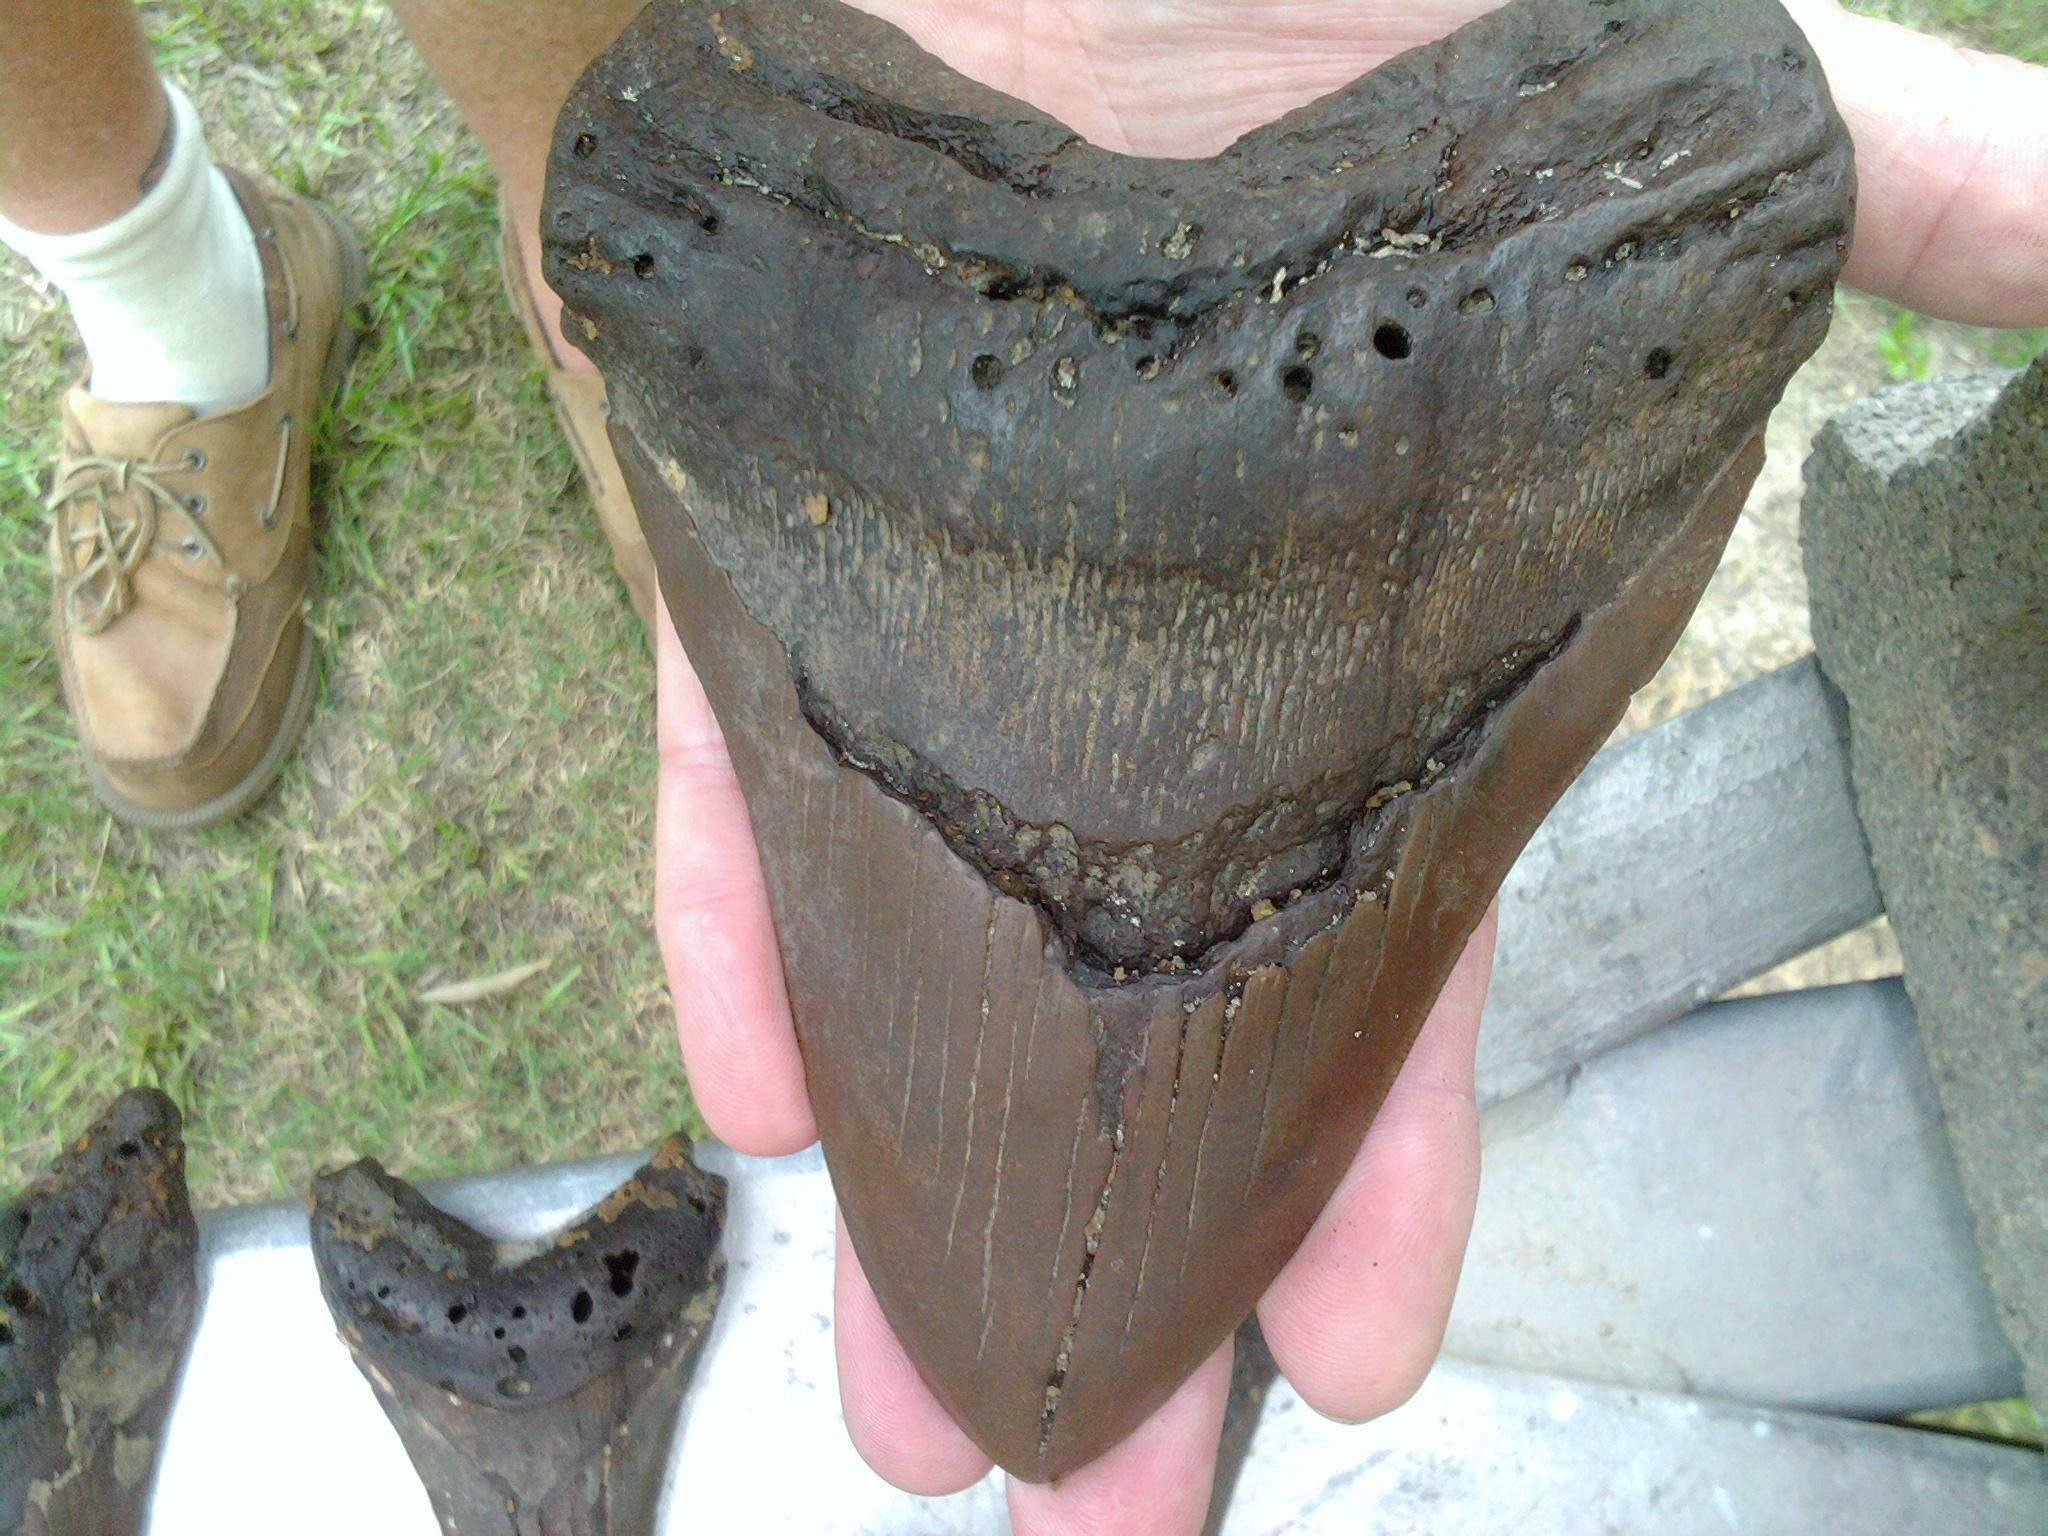 A Megalodon shark tooth fossil. Photo: Johnny Cercopely.